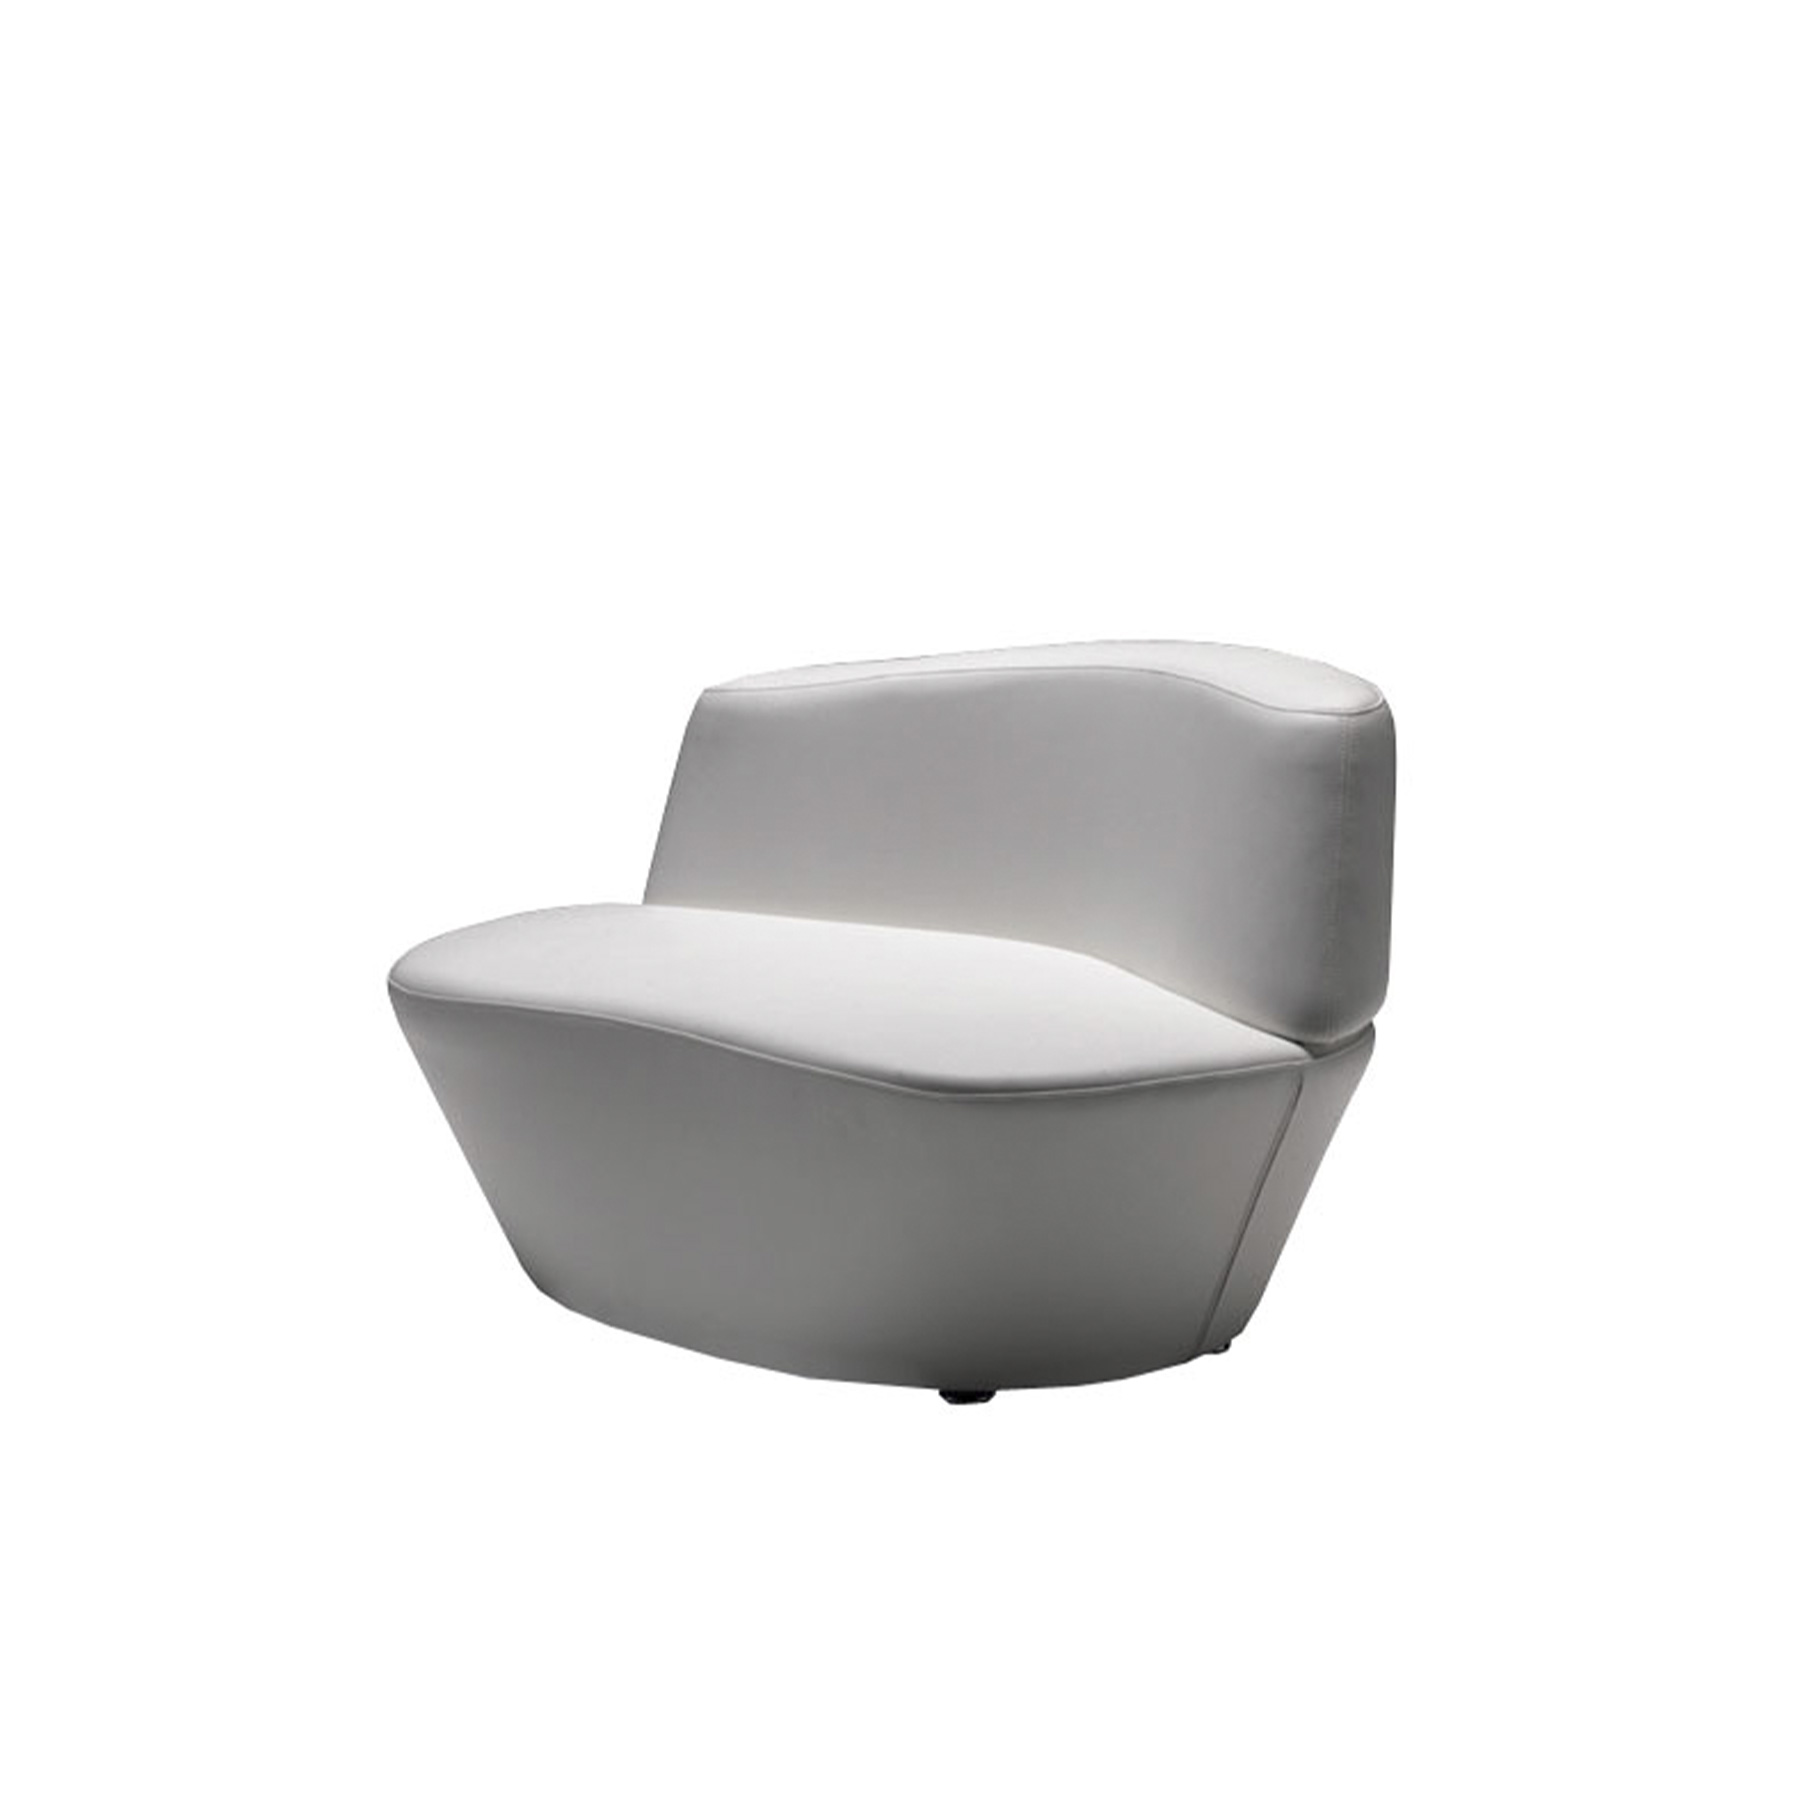 Polar Lounge Armchair - Polar is inspired by the shear forms of the ice caps in the arctic seas, thus giving life to an extremely versatile seating system.‎ The seats and backrests, characterised by their full and sheared forms can be coupled together in a variety of ways, creating numerous seating layouts or options.‎ The system is completed by a rather beautiful armchair and an original accessory which can be used as a seat or side table.‎ | Matter of Stuff